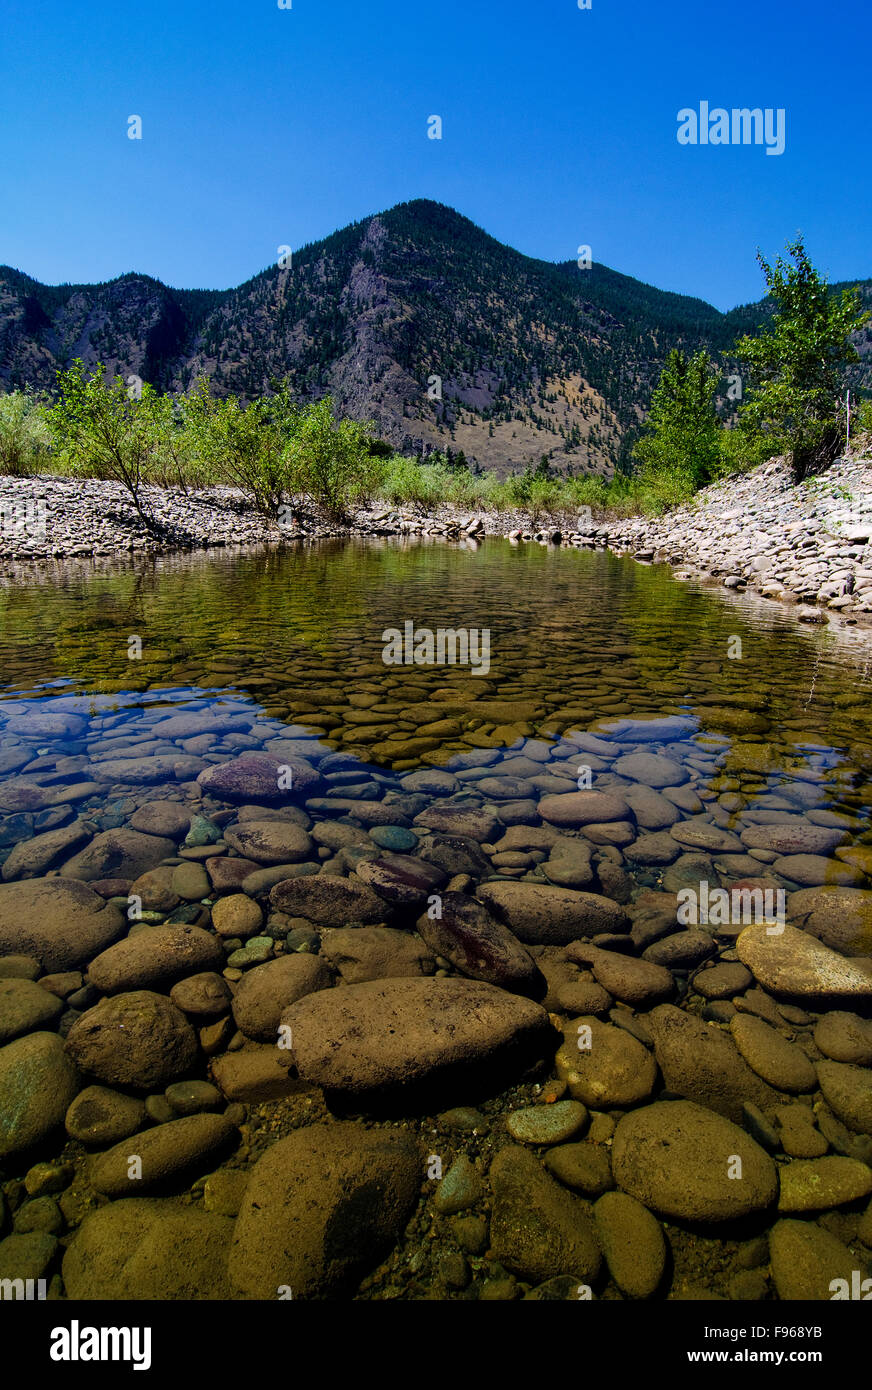 The rocky and rugged terrain along the Similkameen River, near Keremeos, in the Simikameen region of British Columbia, - Stock Image